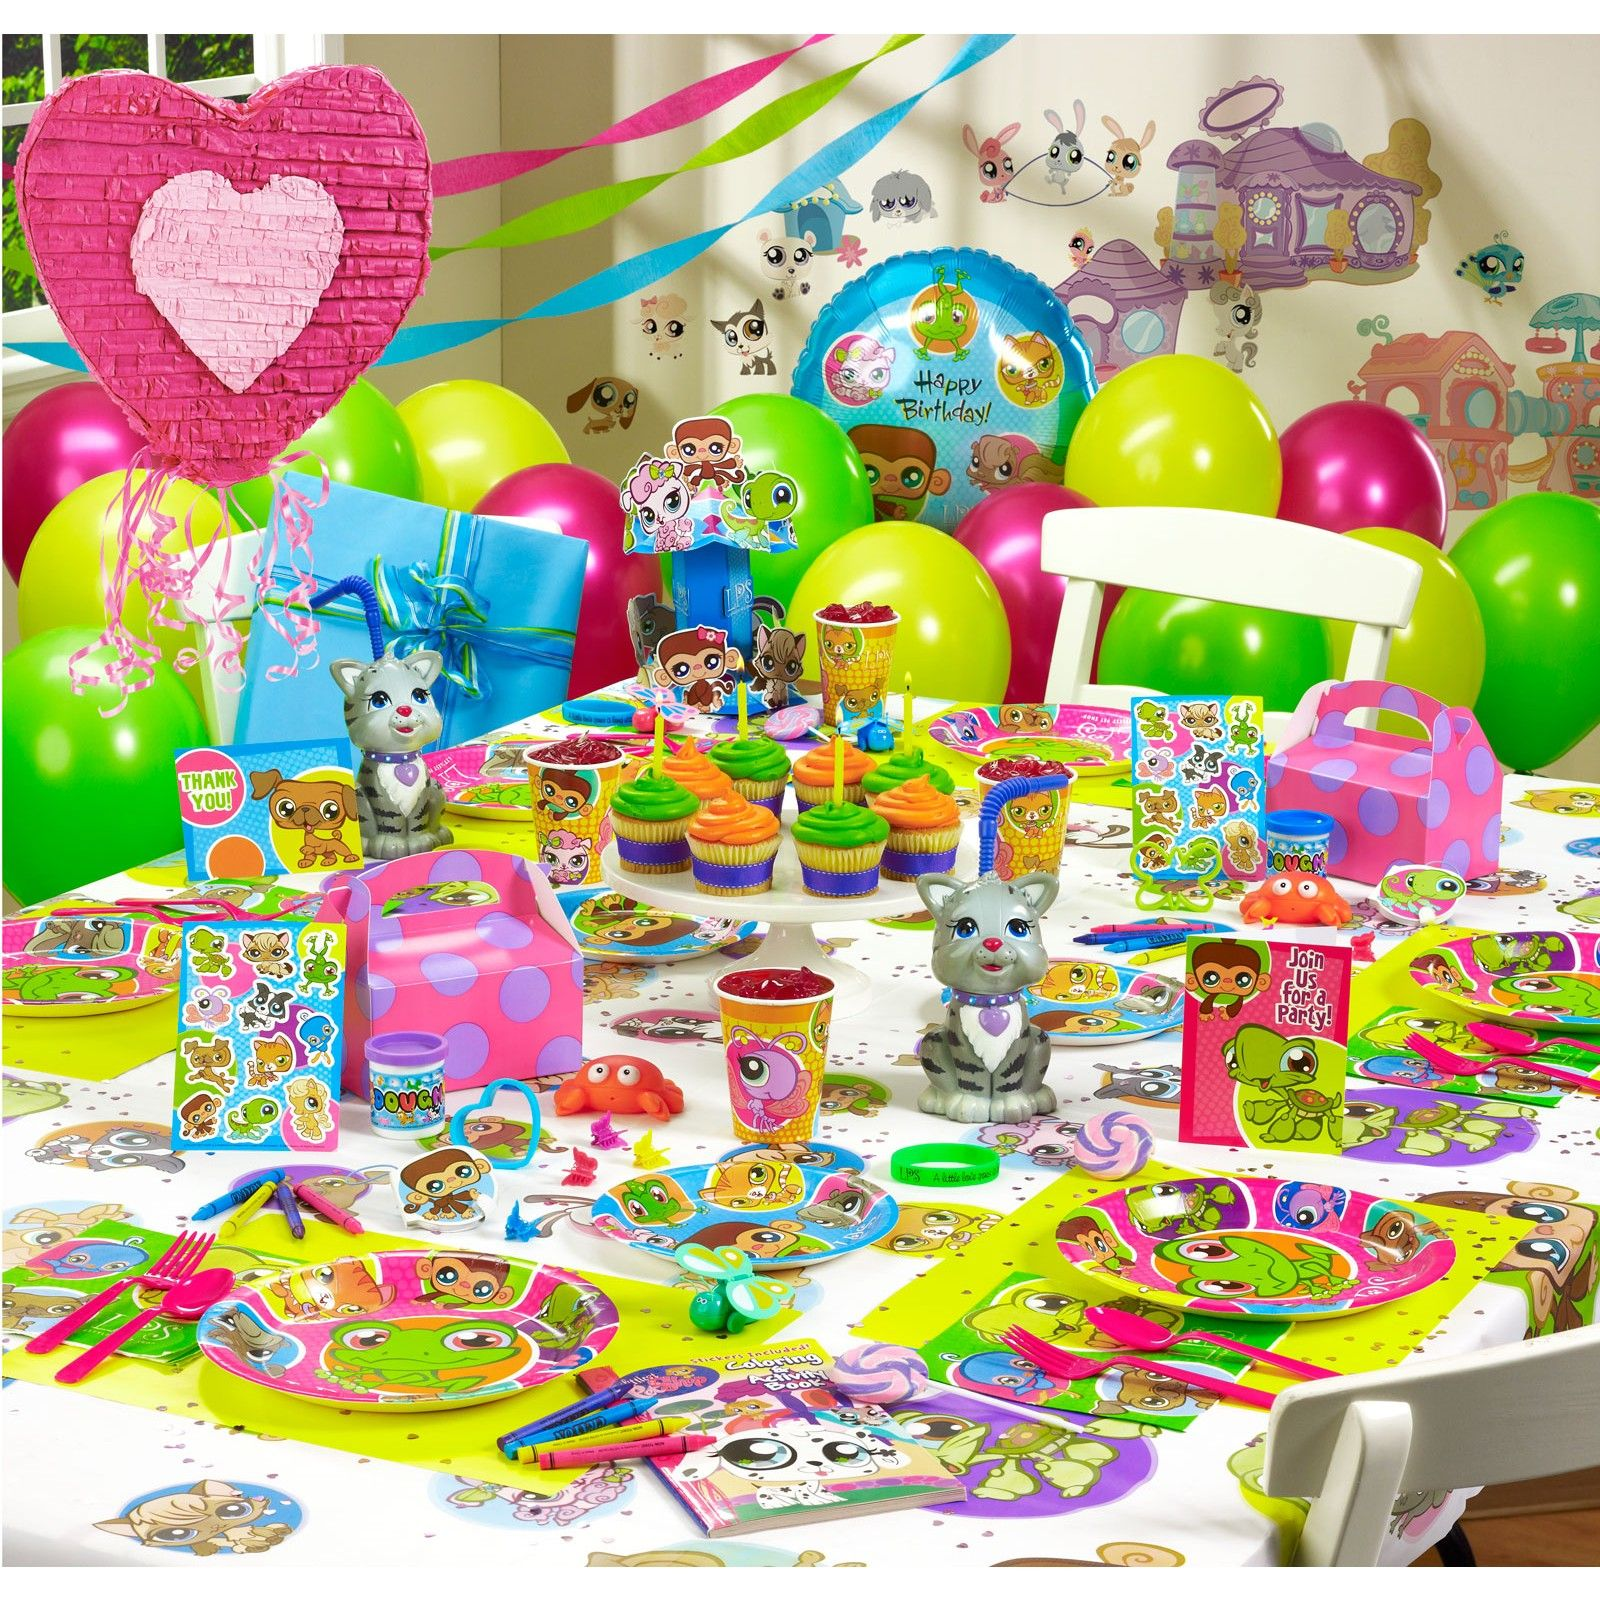 LIttlest Pet Shop birthday supplies (With images) | Bday ...